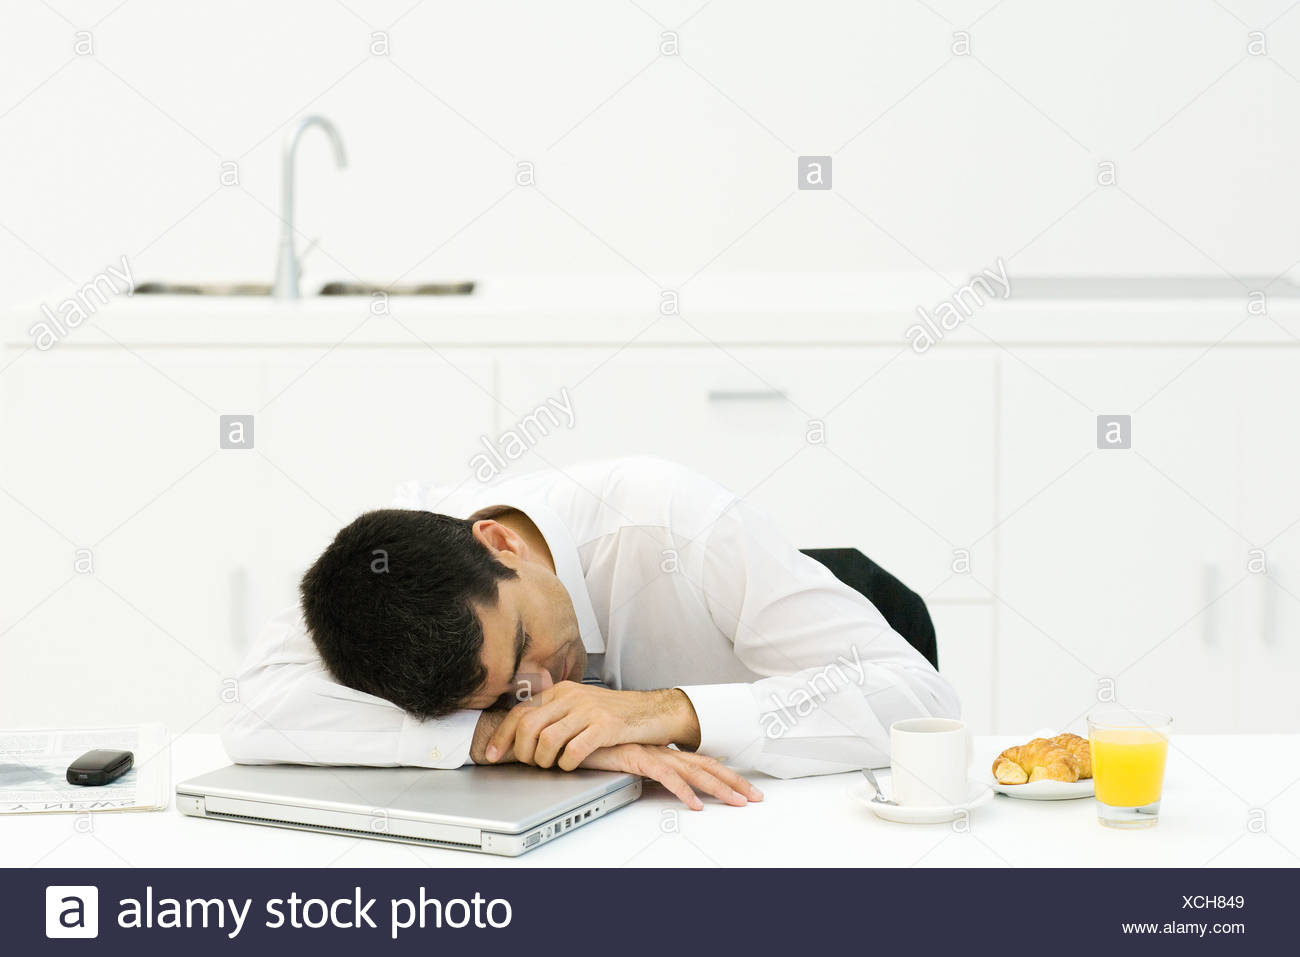 Businessman at breakfast table, resting head on laptop computer, eyes closed - Stock Image